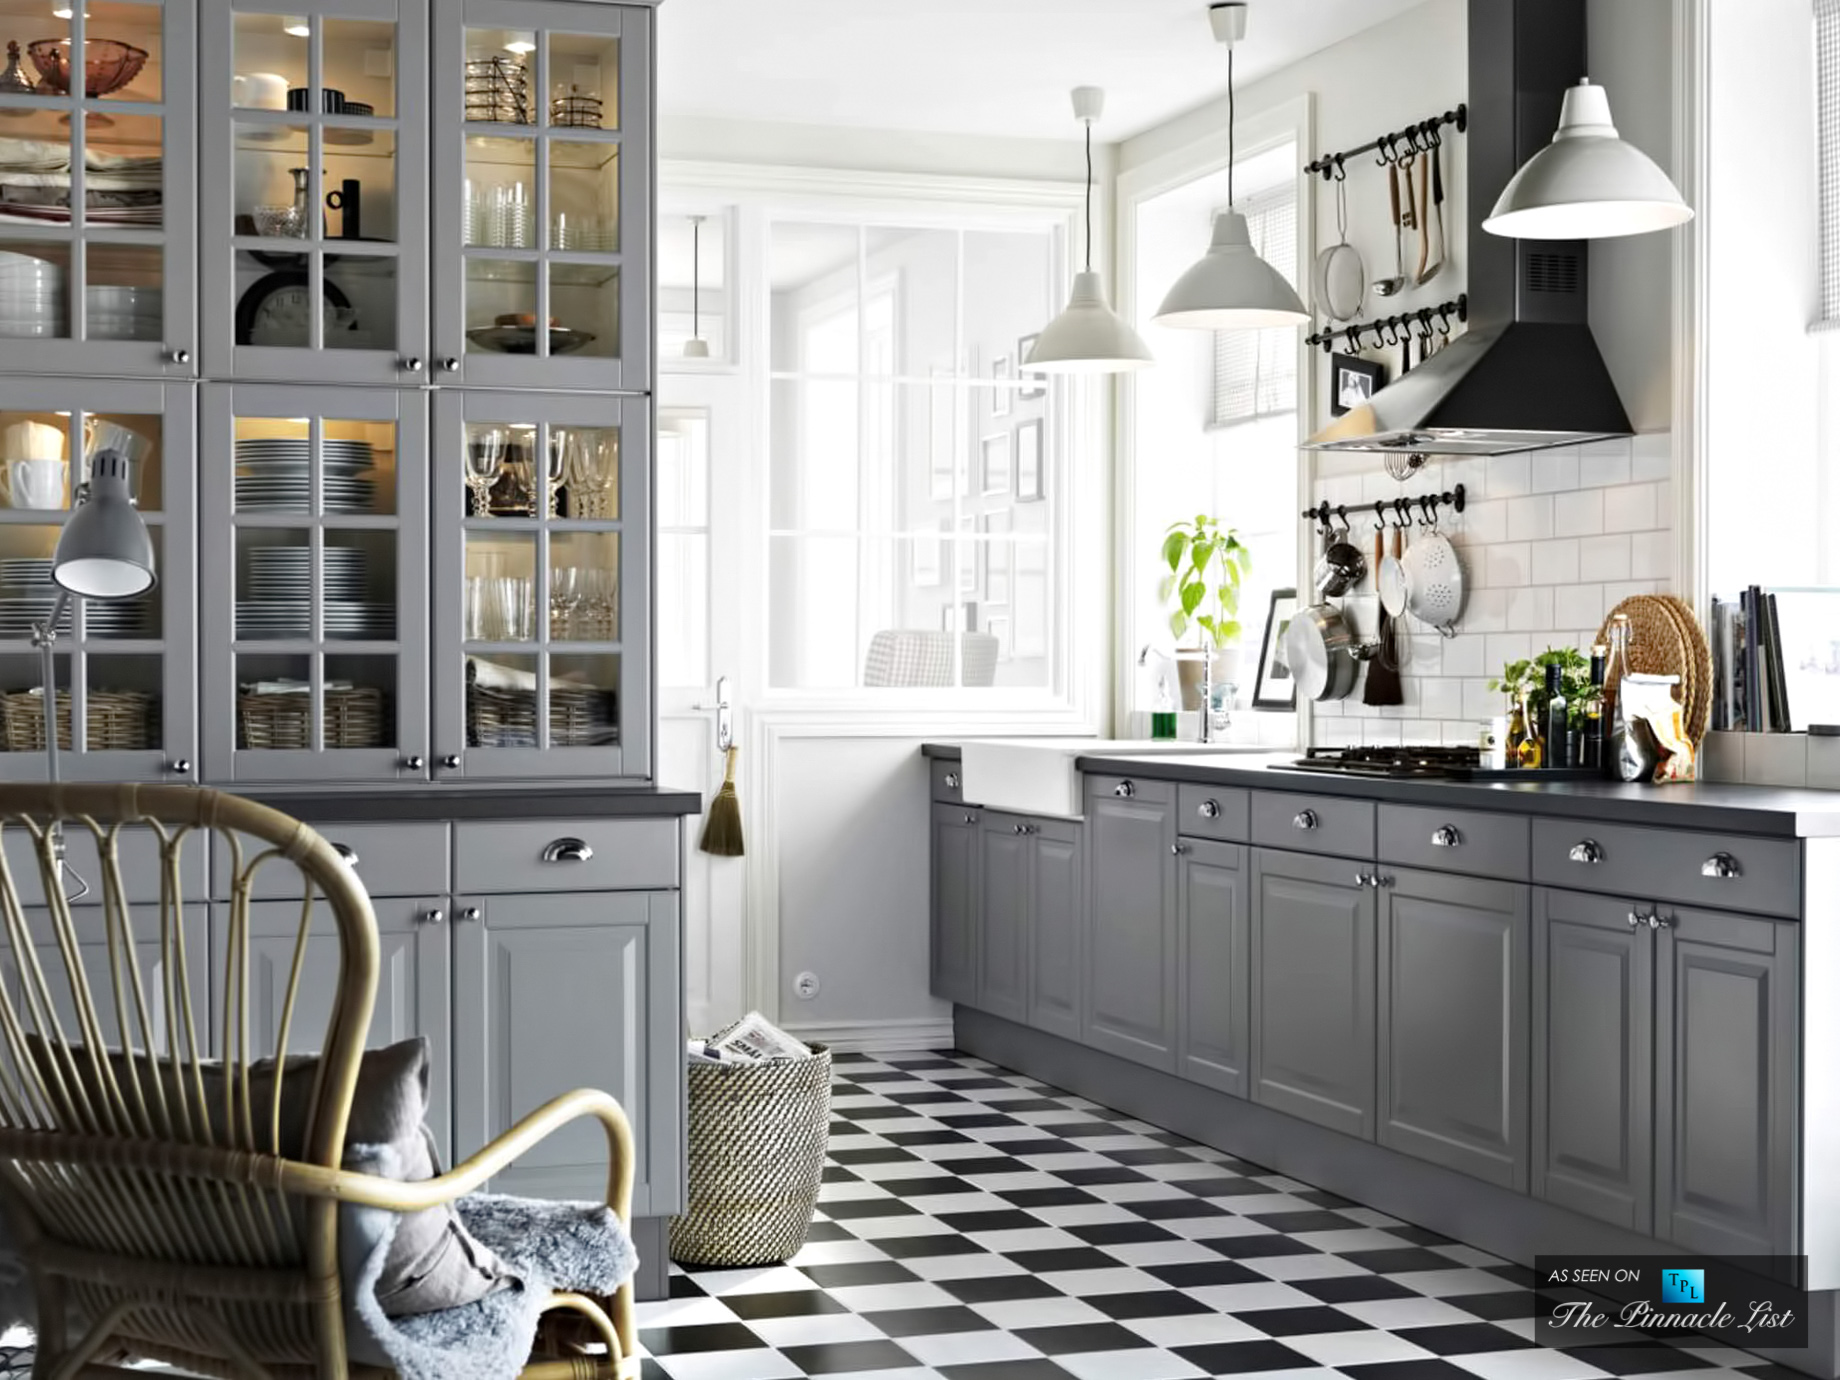 Assess Your Décor - How To Modernize Your Home For Selling with Kitchen Pendant Lights